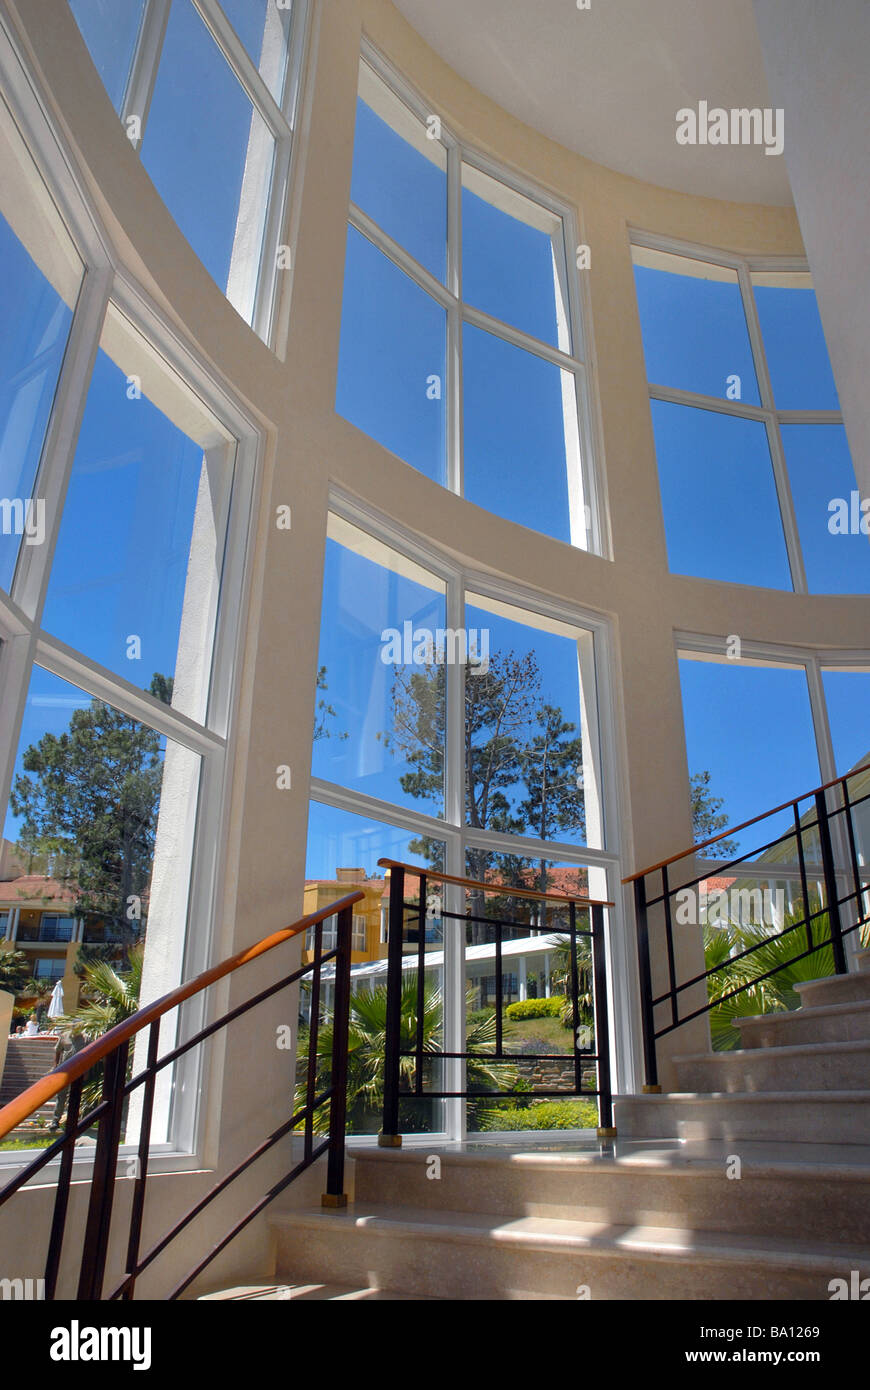 Wide angle picture of stairs and big glass windows interior building